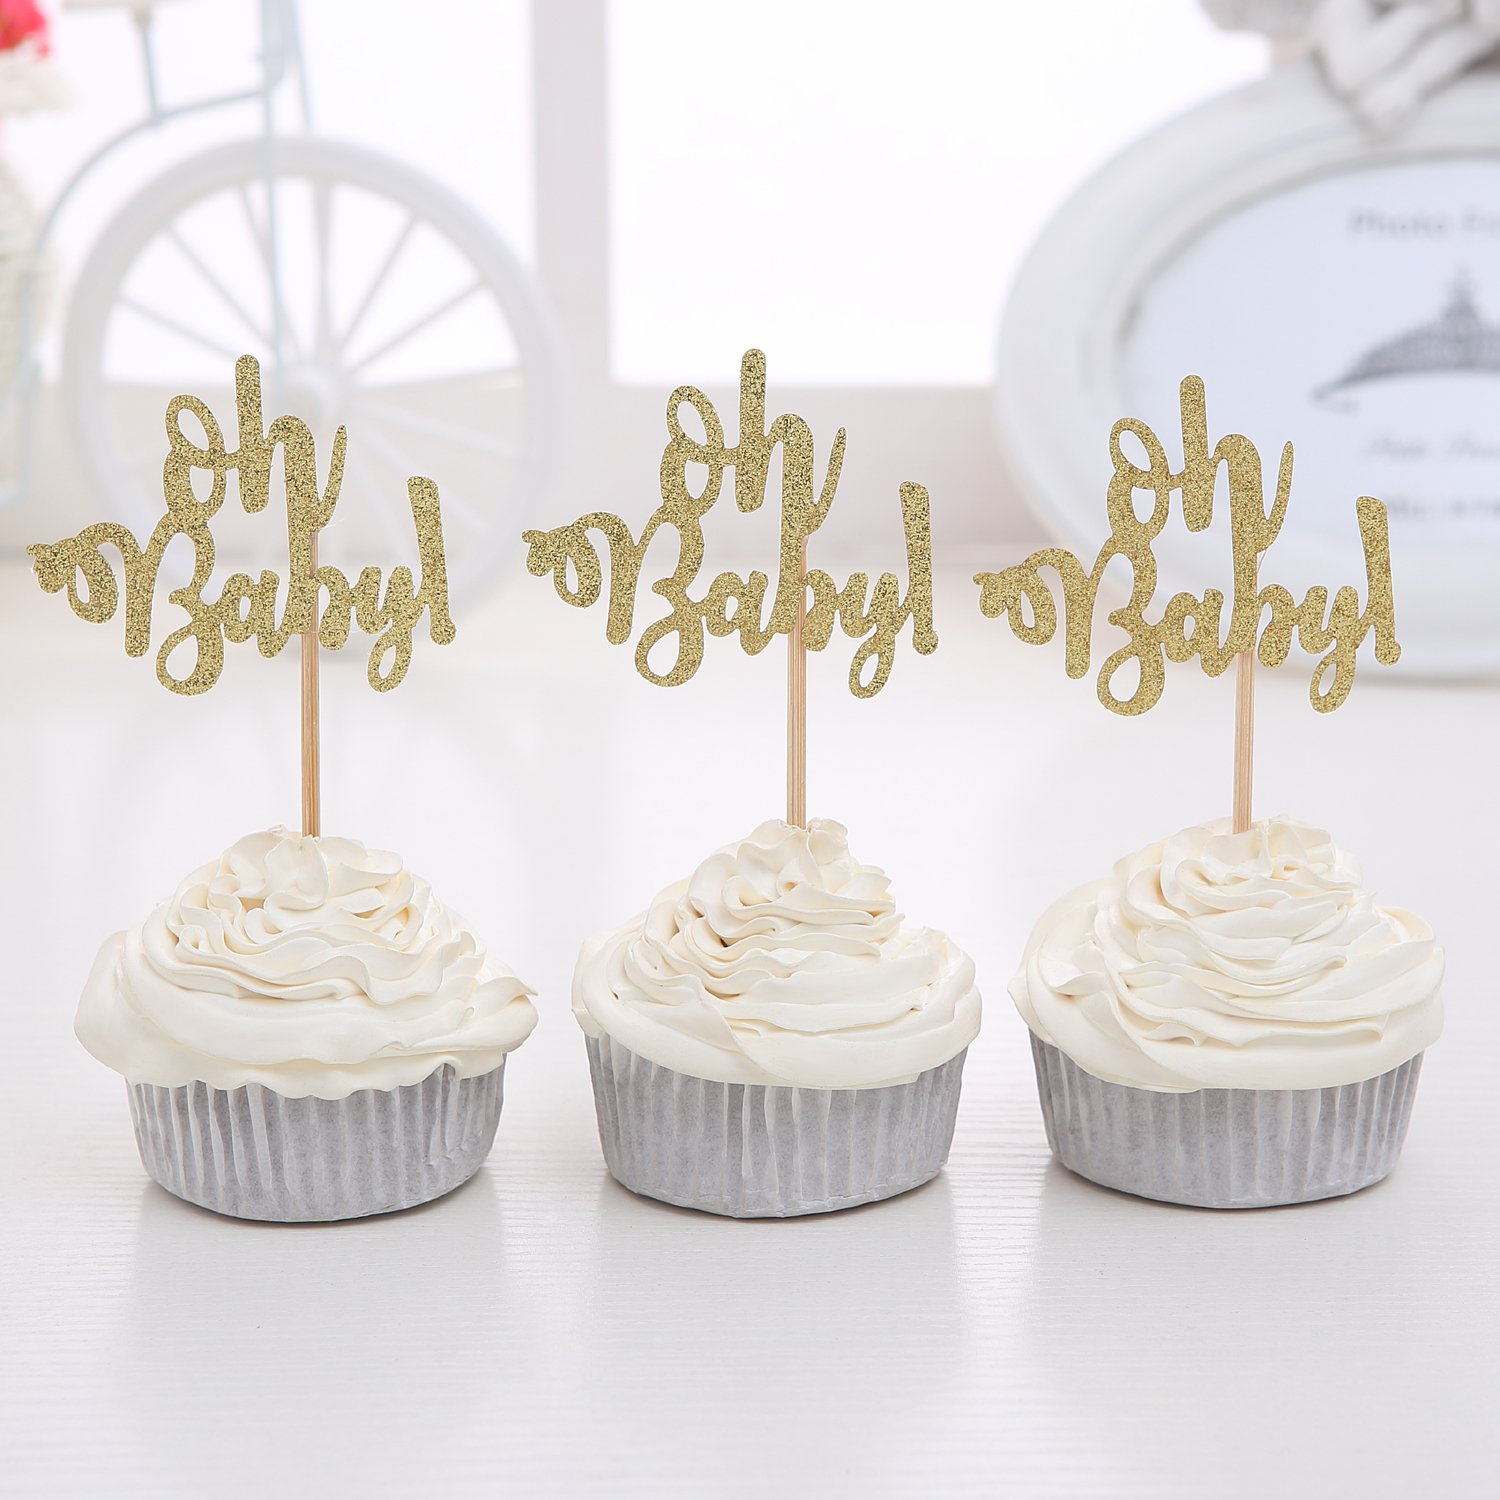 Giuffi Set of 24 Golden Oh Baby One Cupcake Toppers Party Decors Baby's Birthday